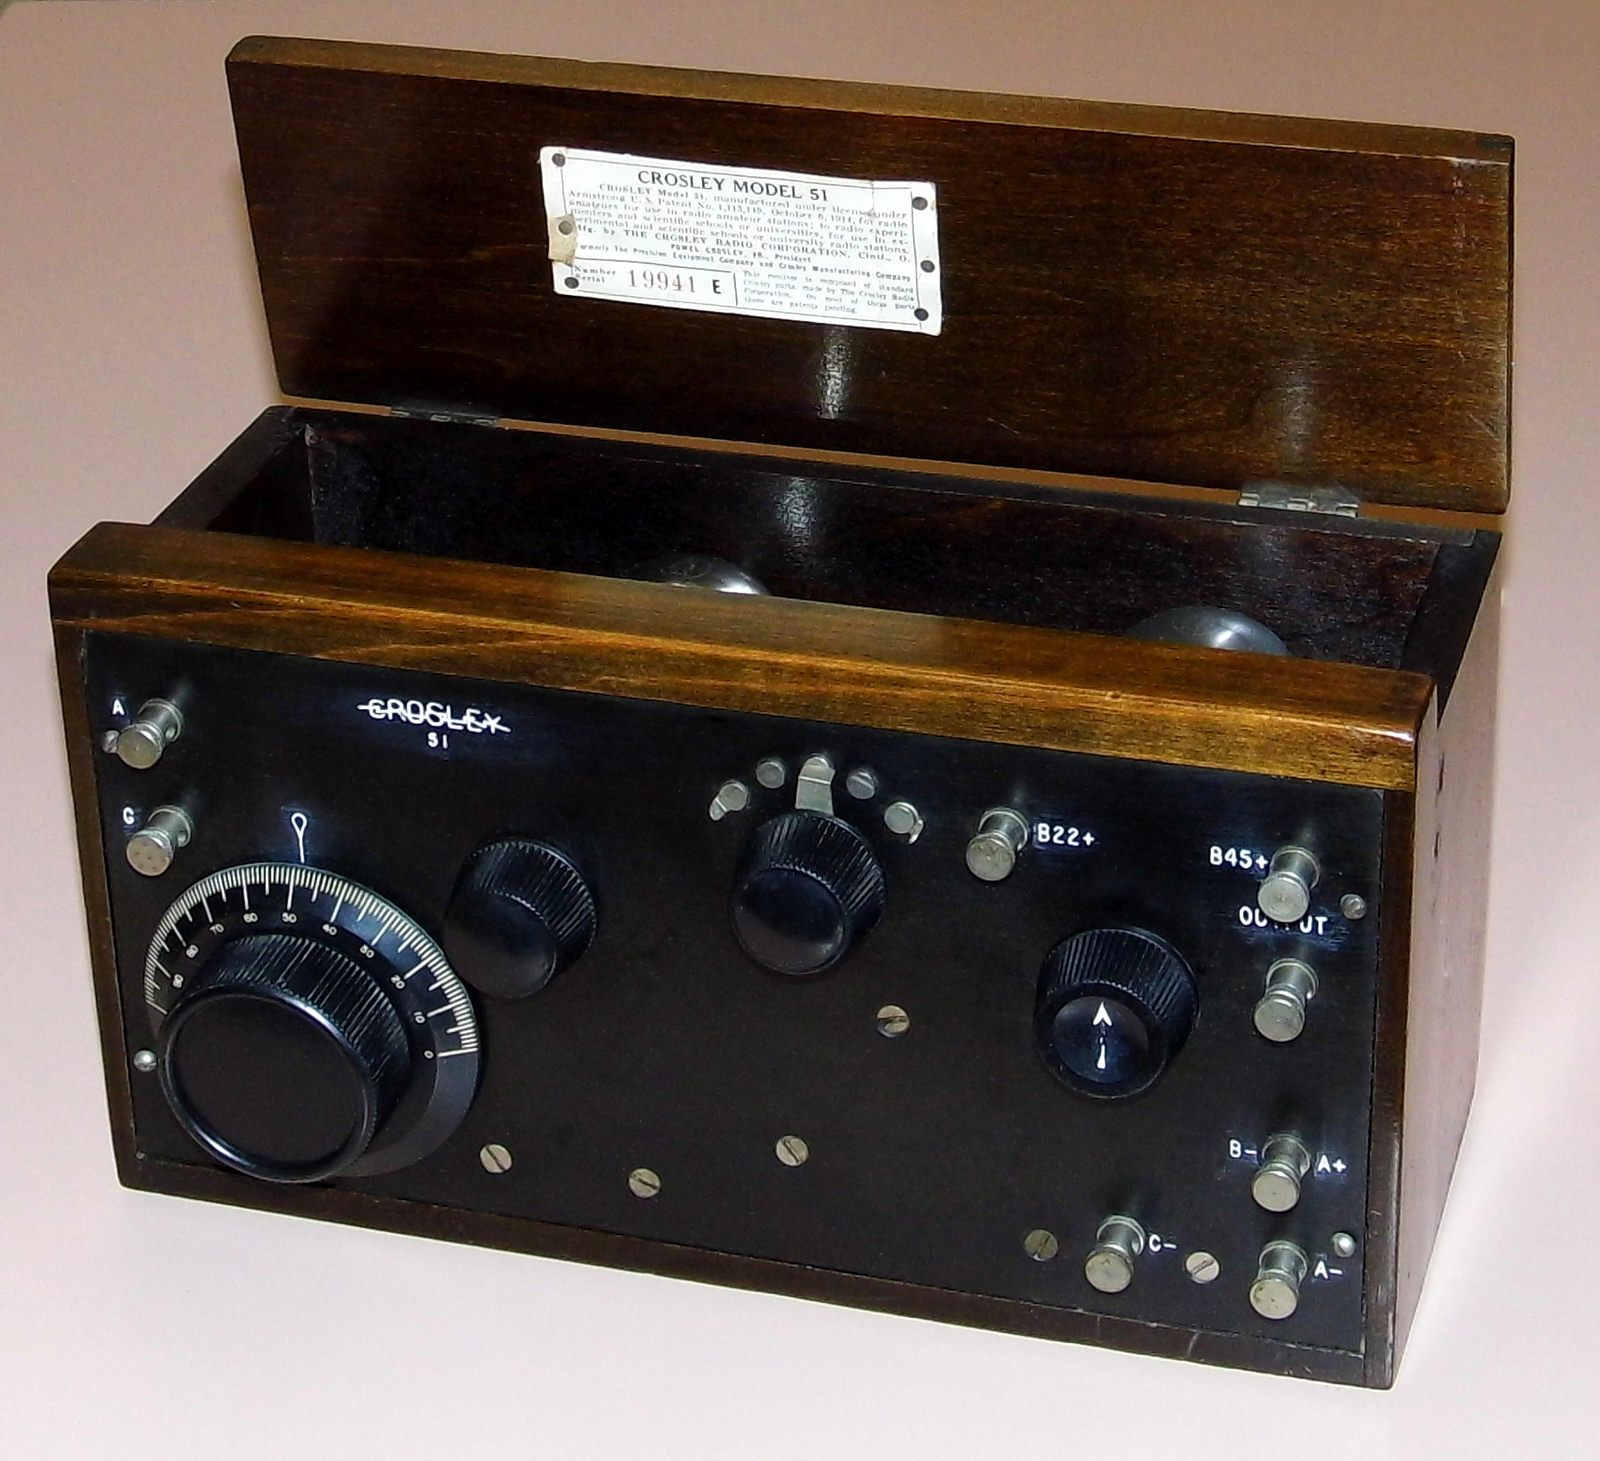 Vintage Crosley Radio Receiver Model 51 Two Vacuum Tube Regenerative Receiver Requires External Speaker Headphone Made In Usa Circa 1924 Radio Vacuum Tube Vintage Radio